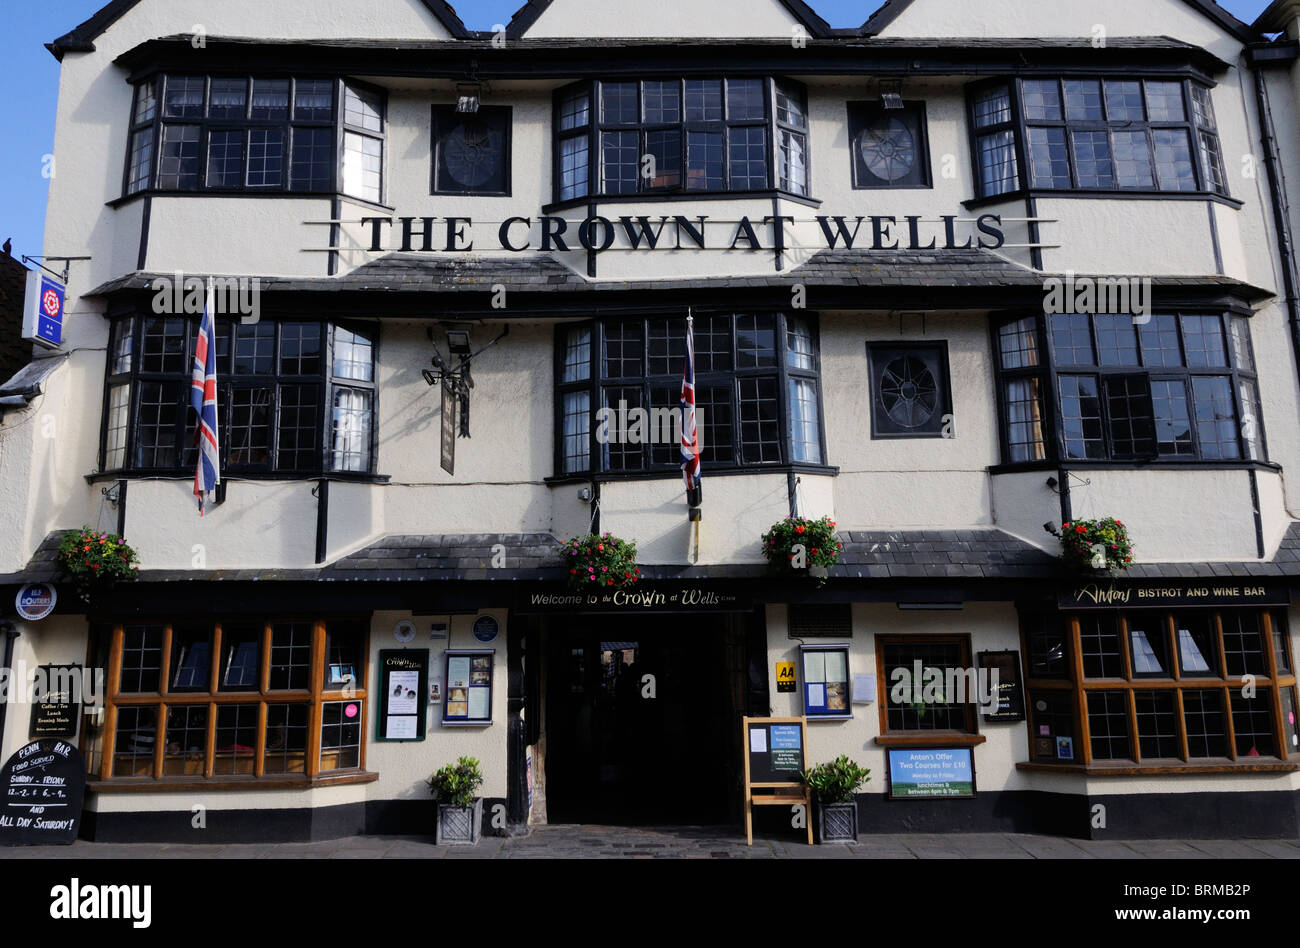 The Crown at Wells - Stock Image